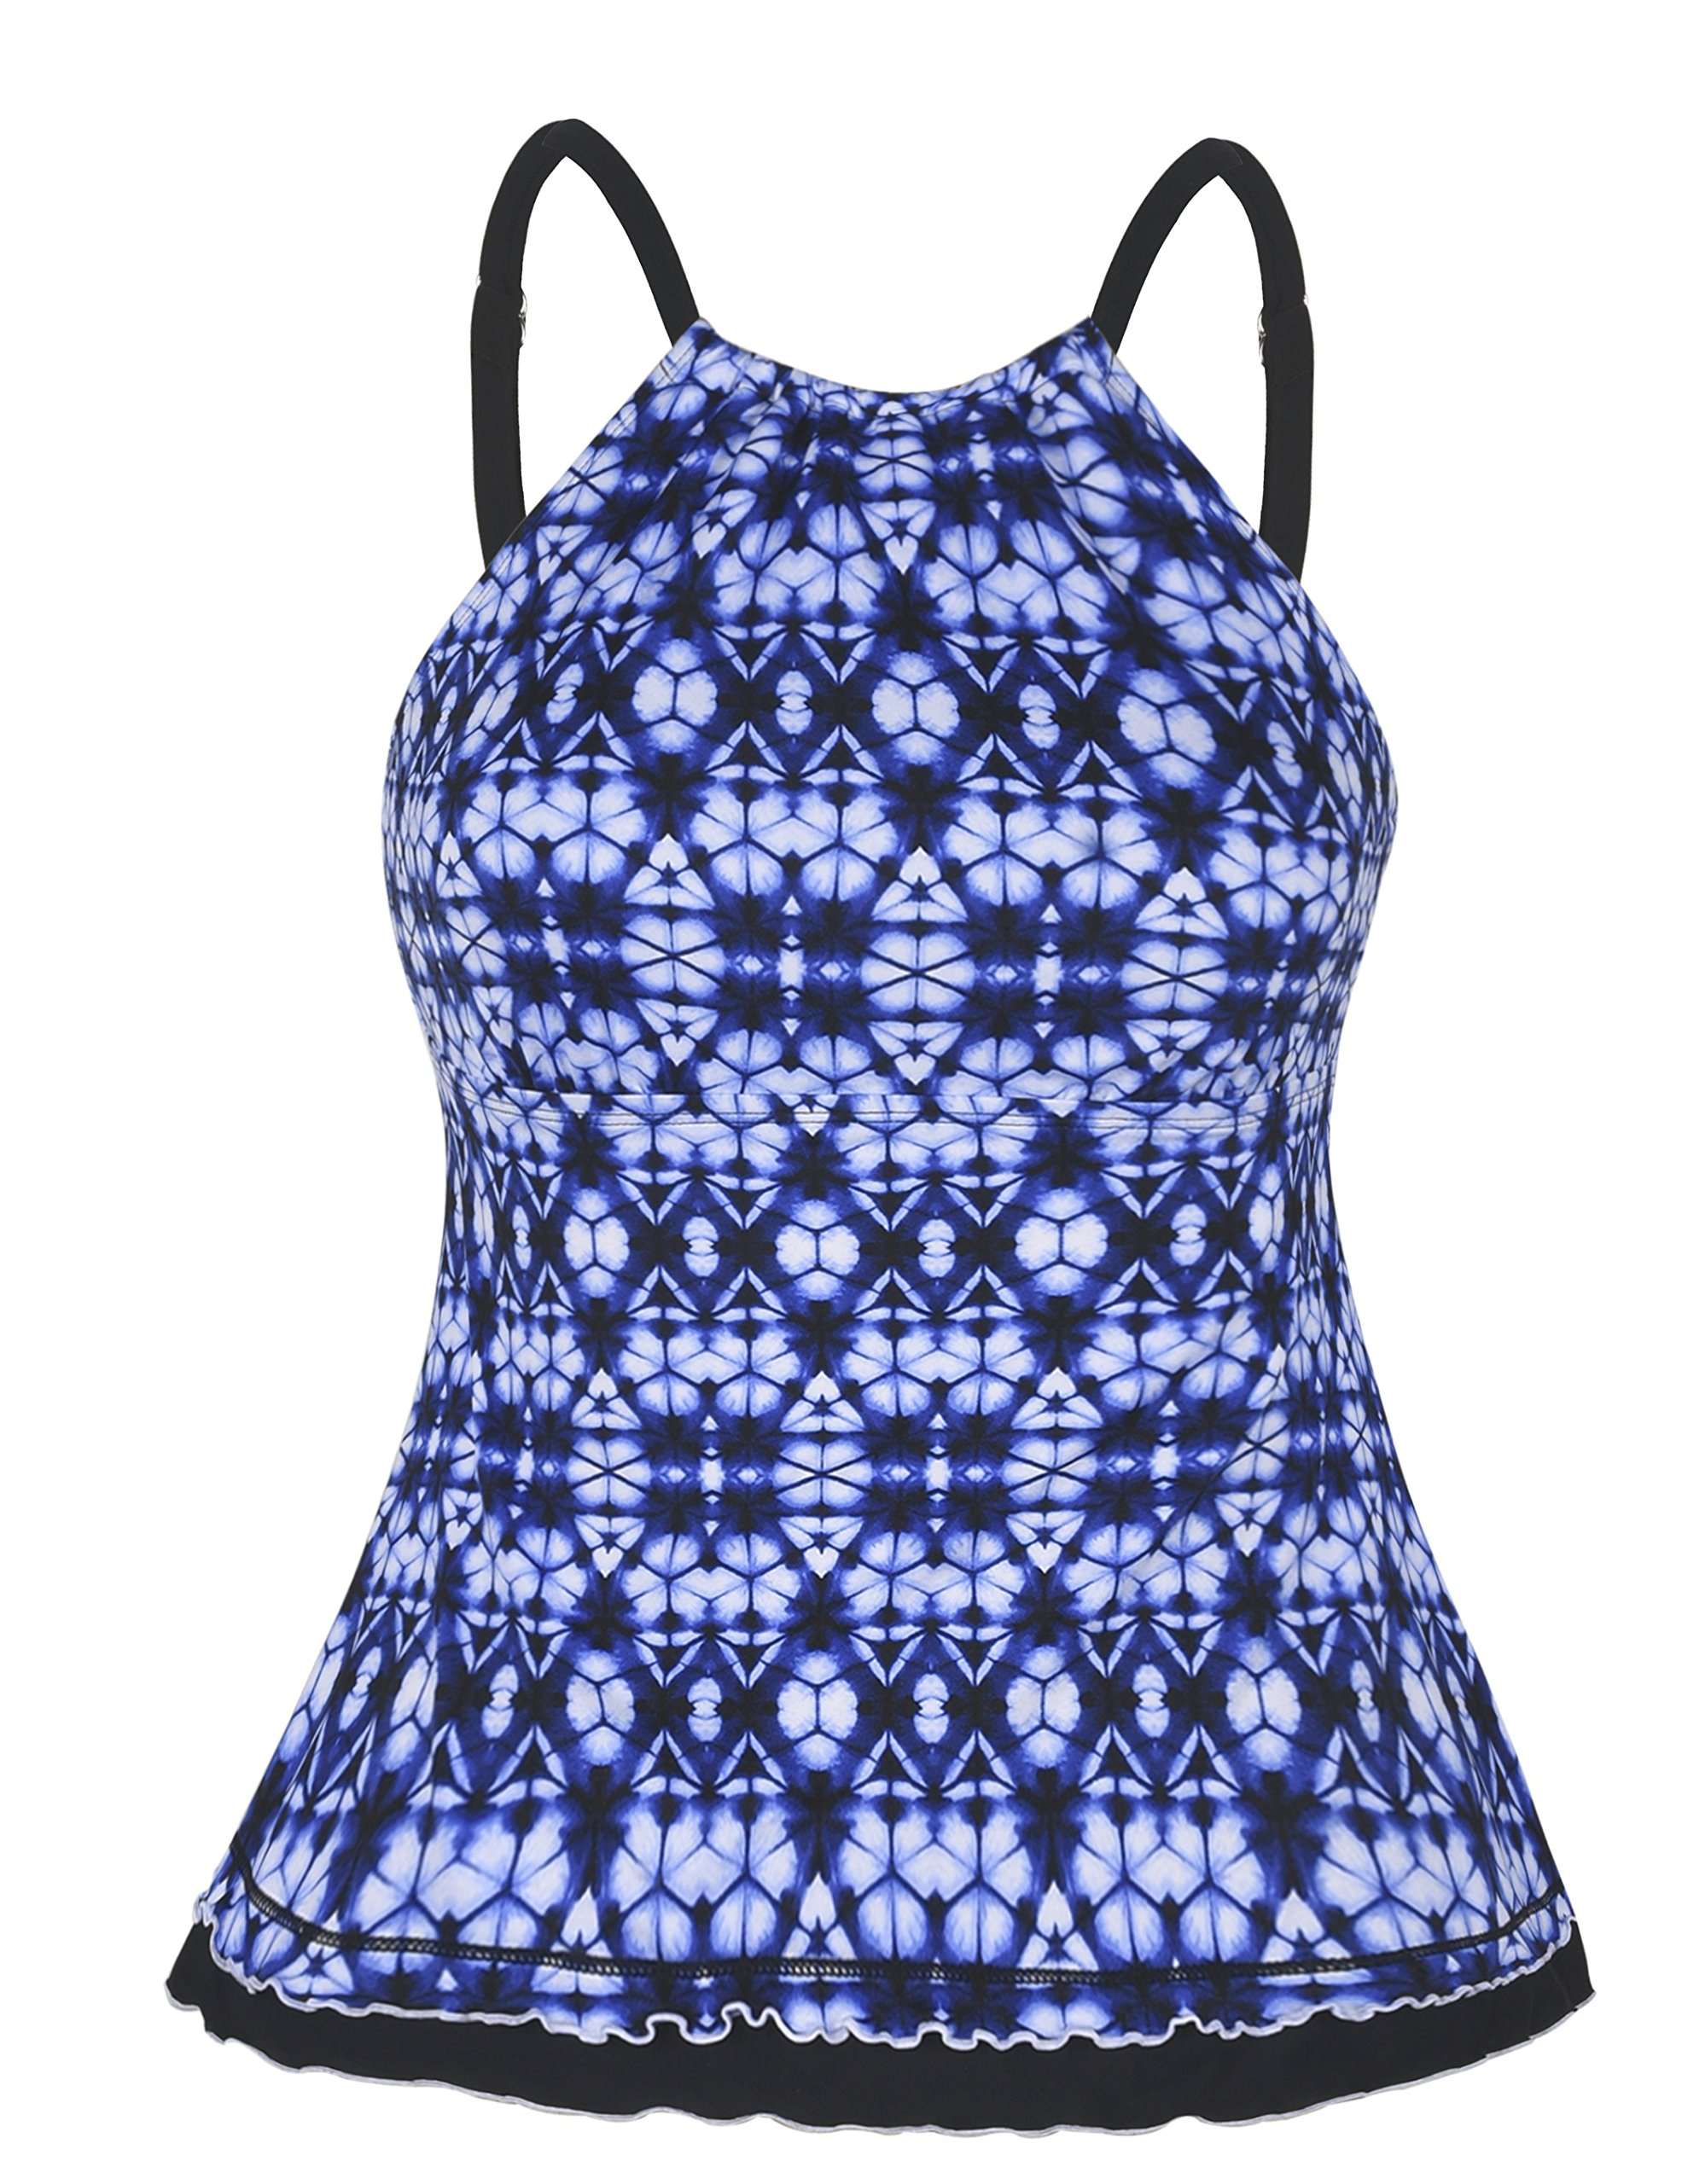 Firpearl Women's Swimsuit High Neck Retro Ruffle Hem Tankini Top Swimwear Blue&White Floral 14